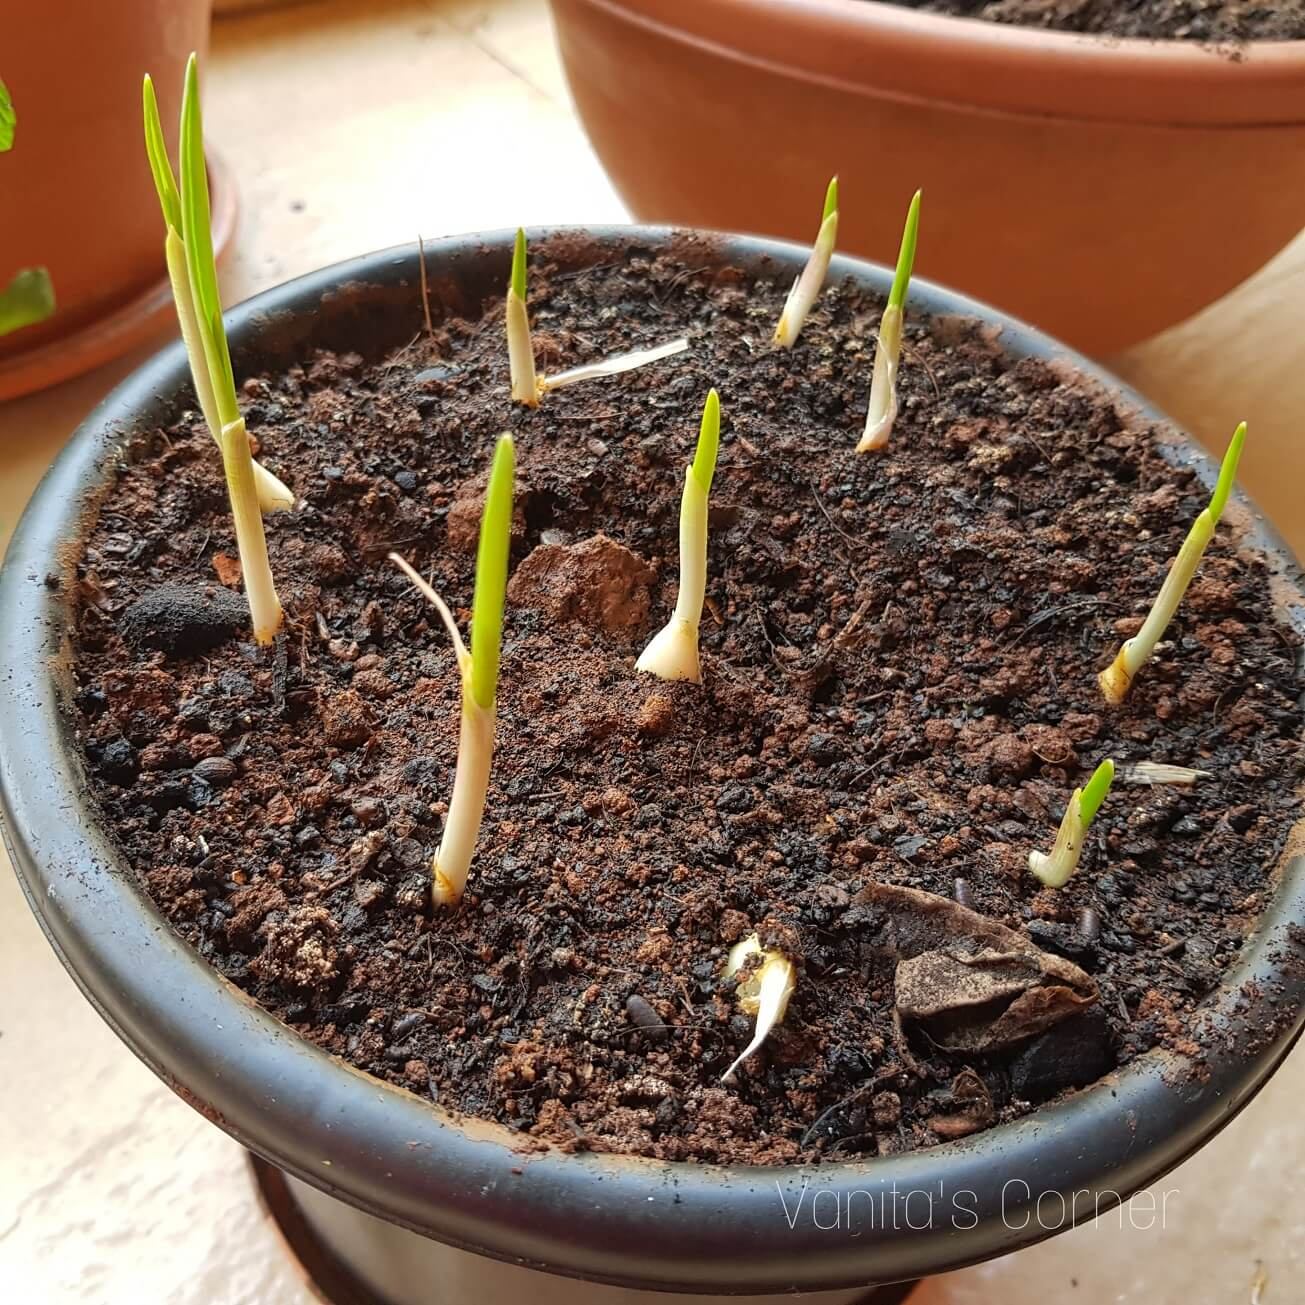 Growing green garlic at home